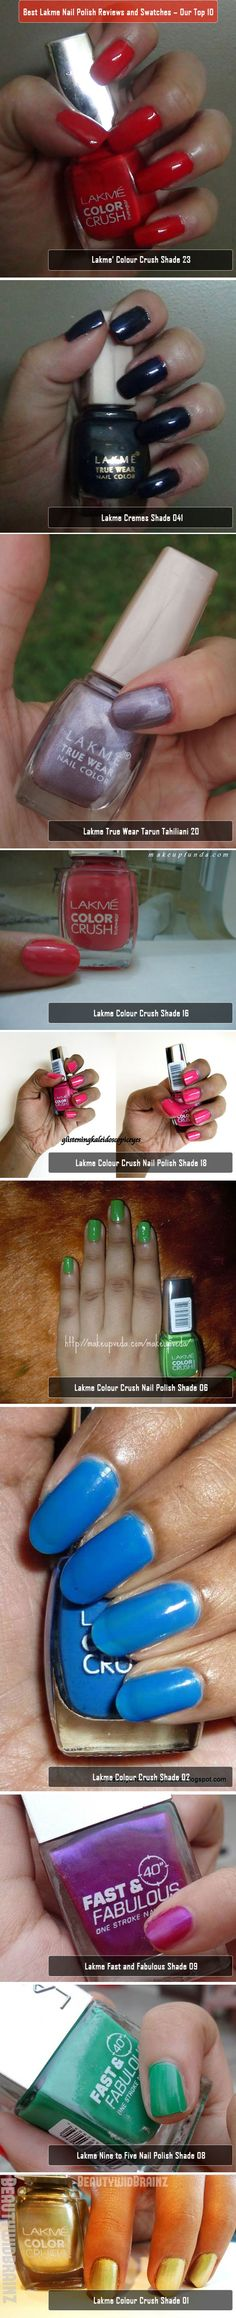 Top 10 Best Lakme Nail Polish Reviews and Swatches